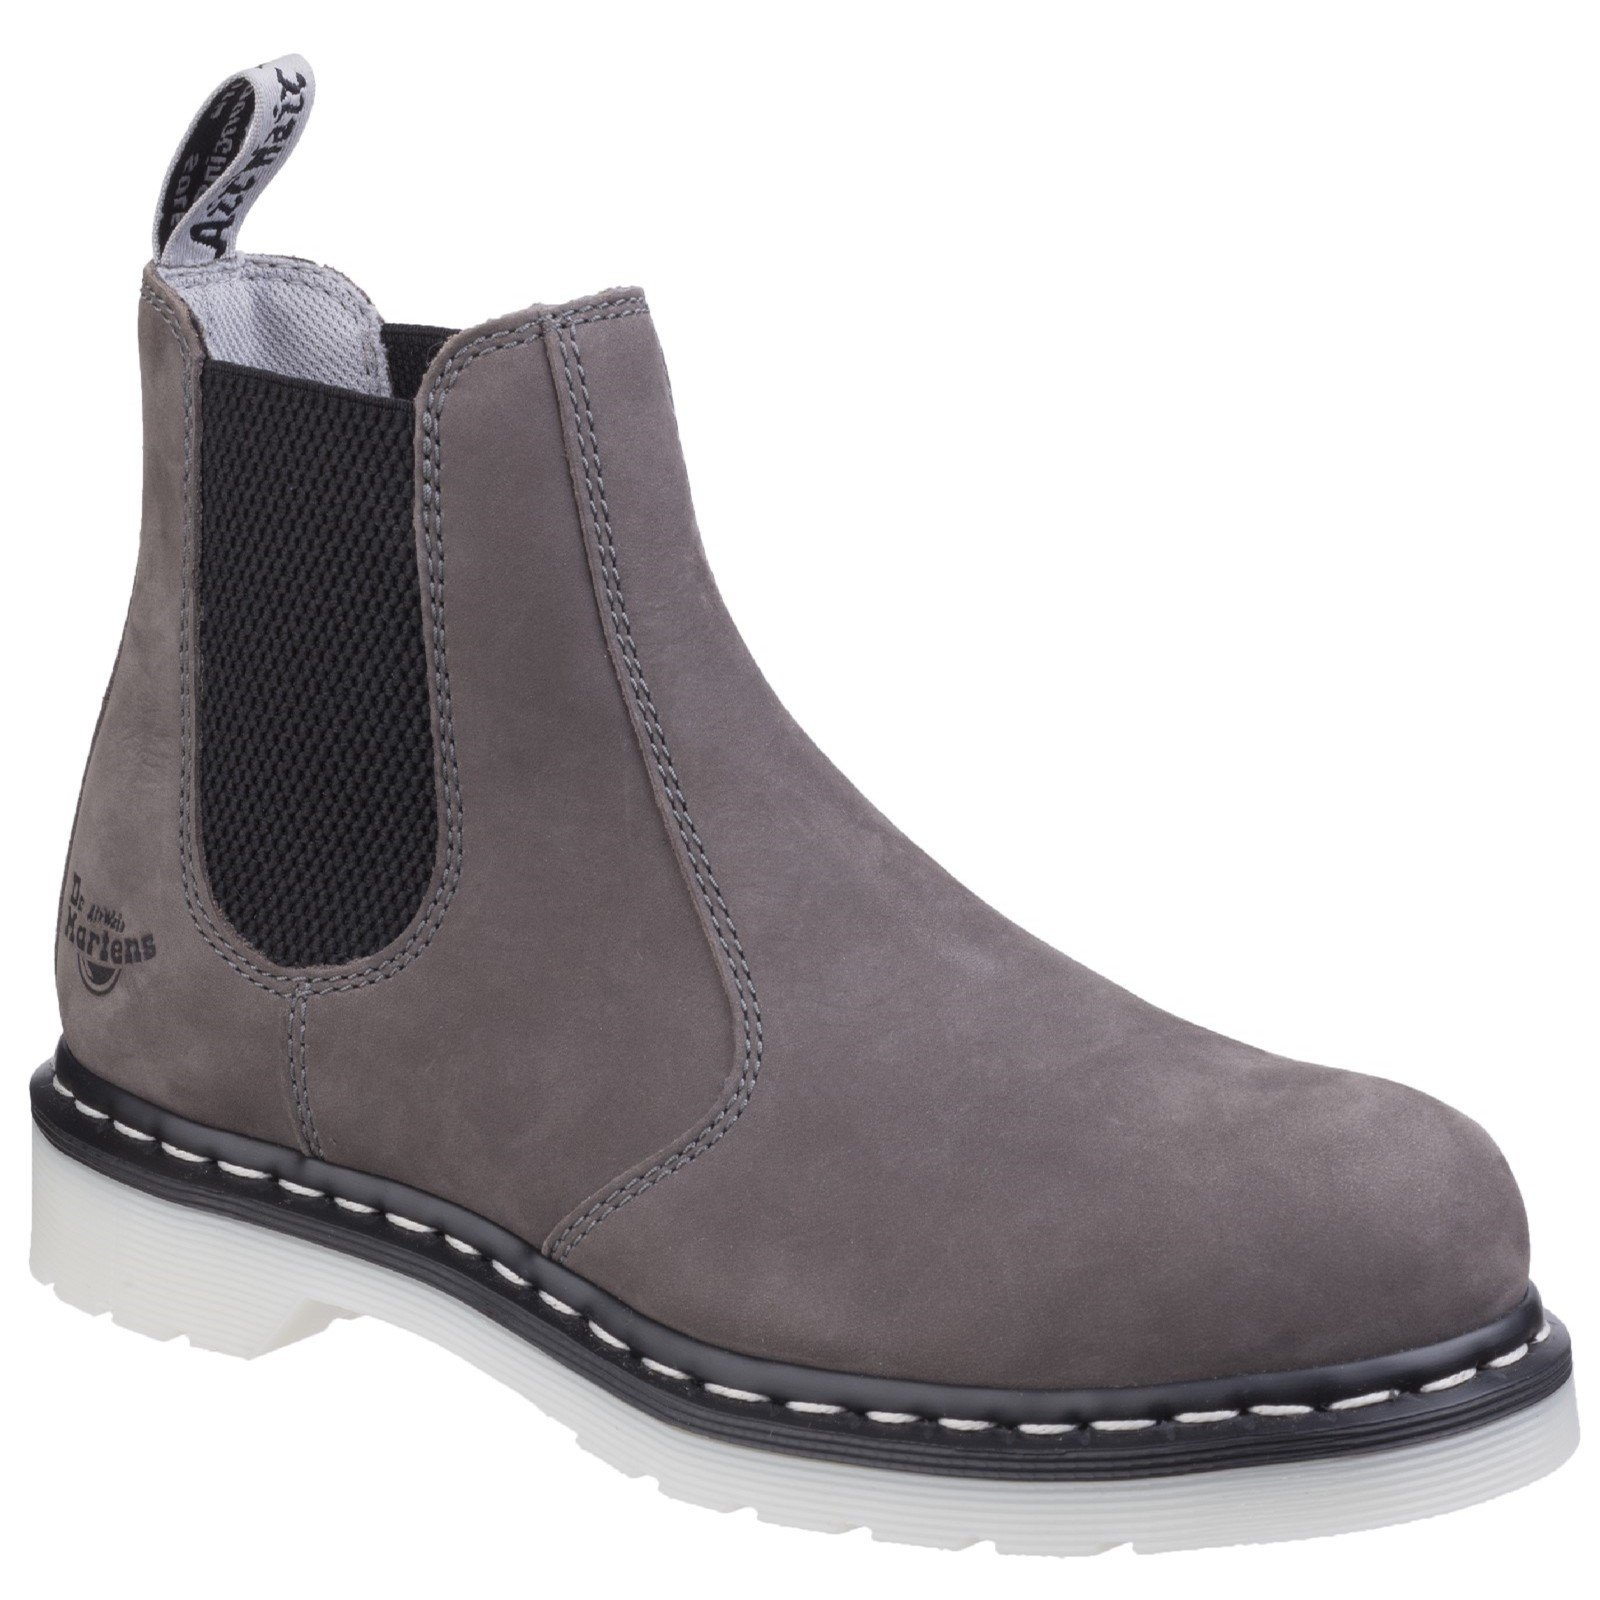 Dr Martens Women's Arbor Elastic Safety Boot Various Colours 29517 - Grey Wind River 7